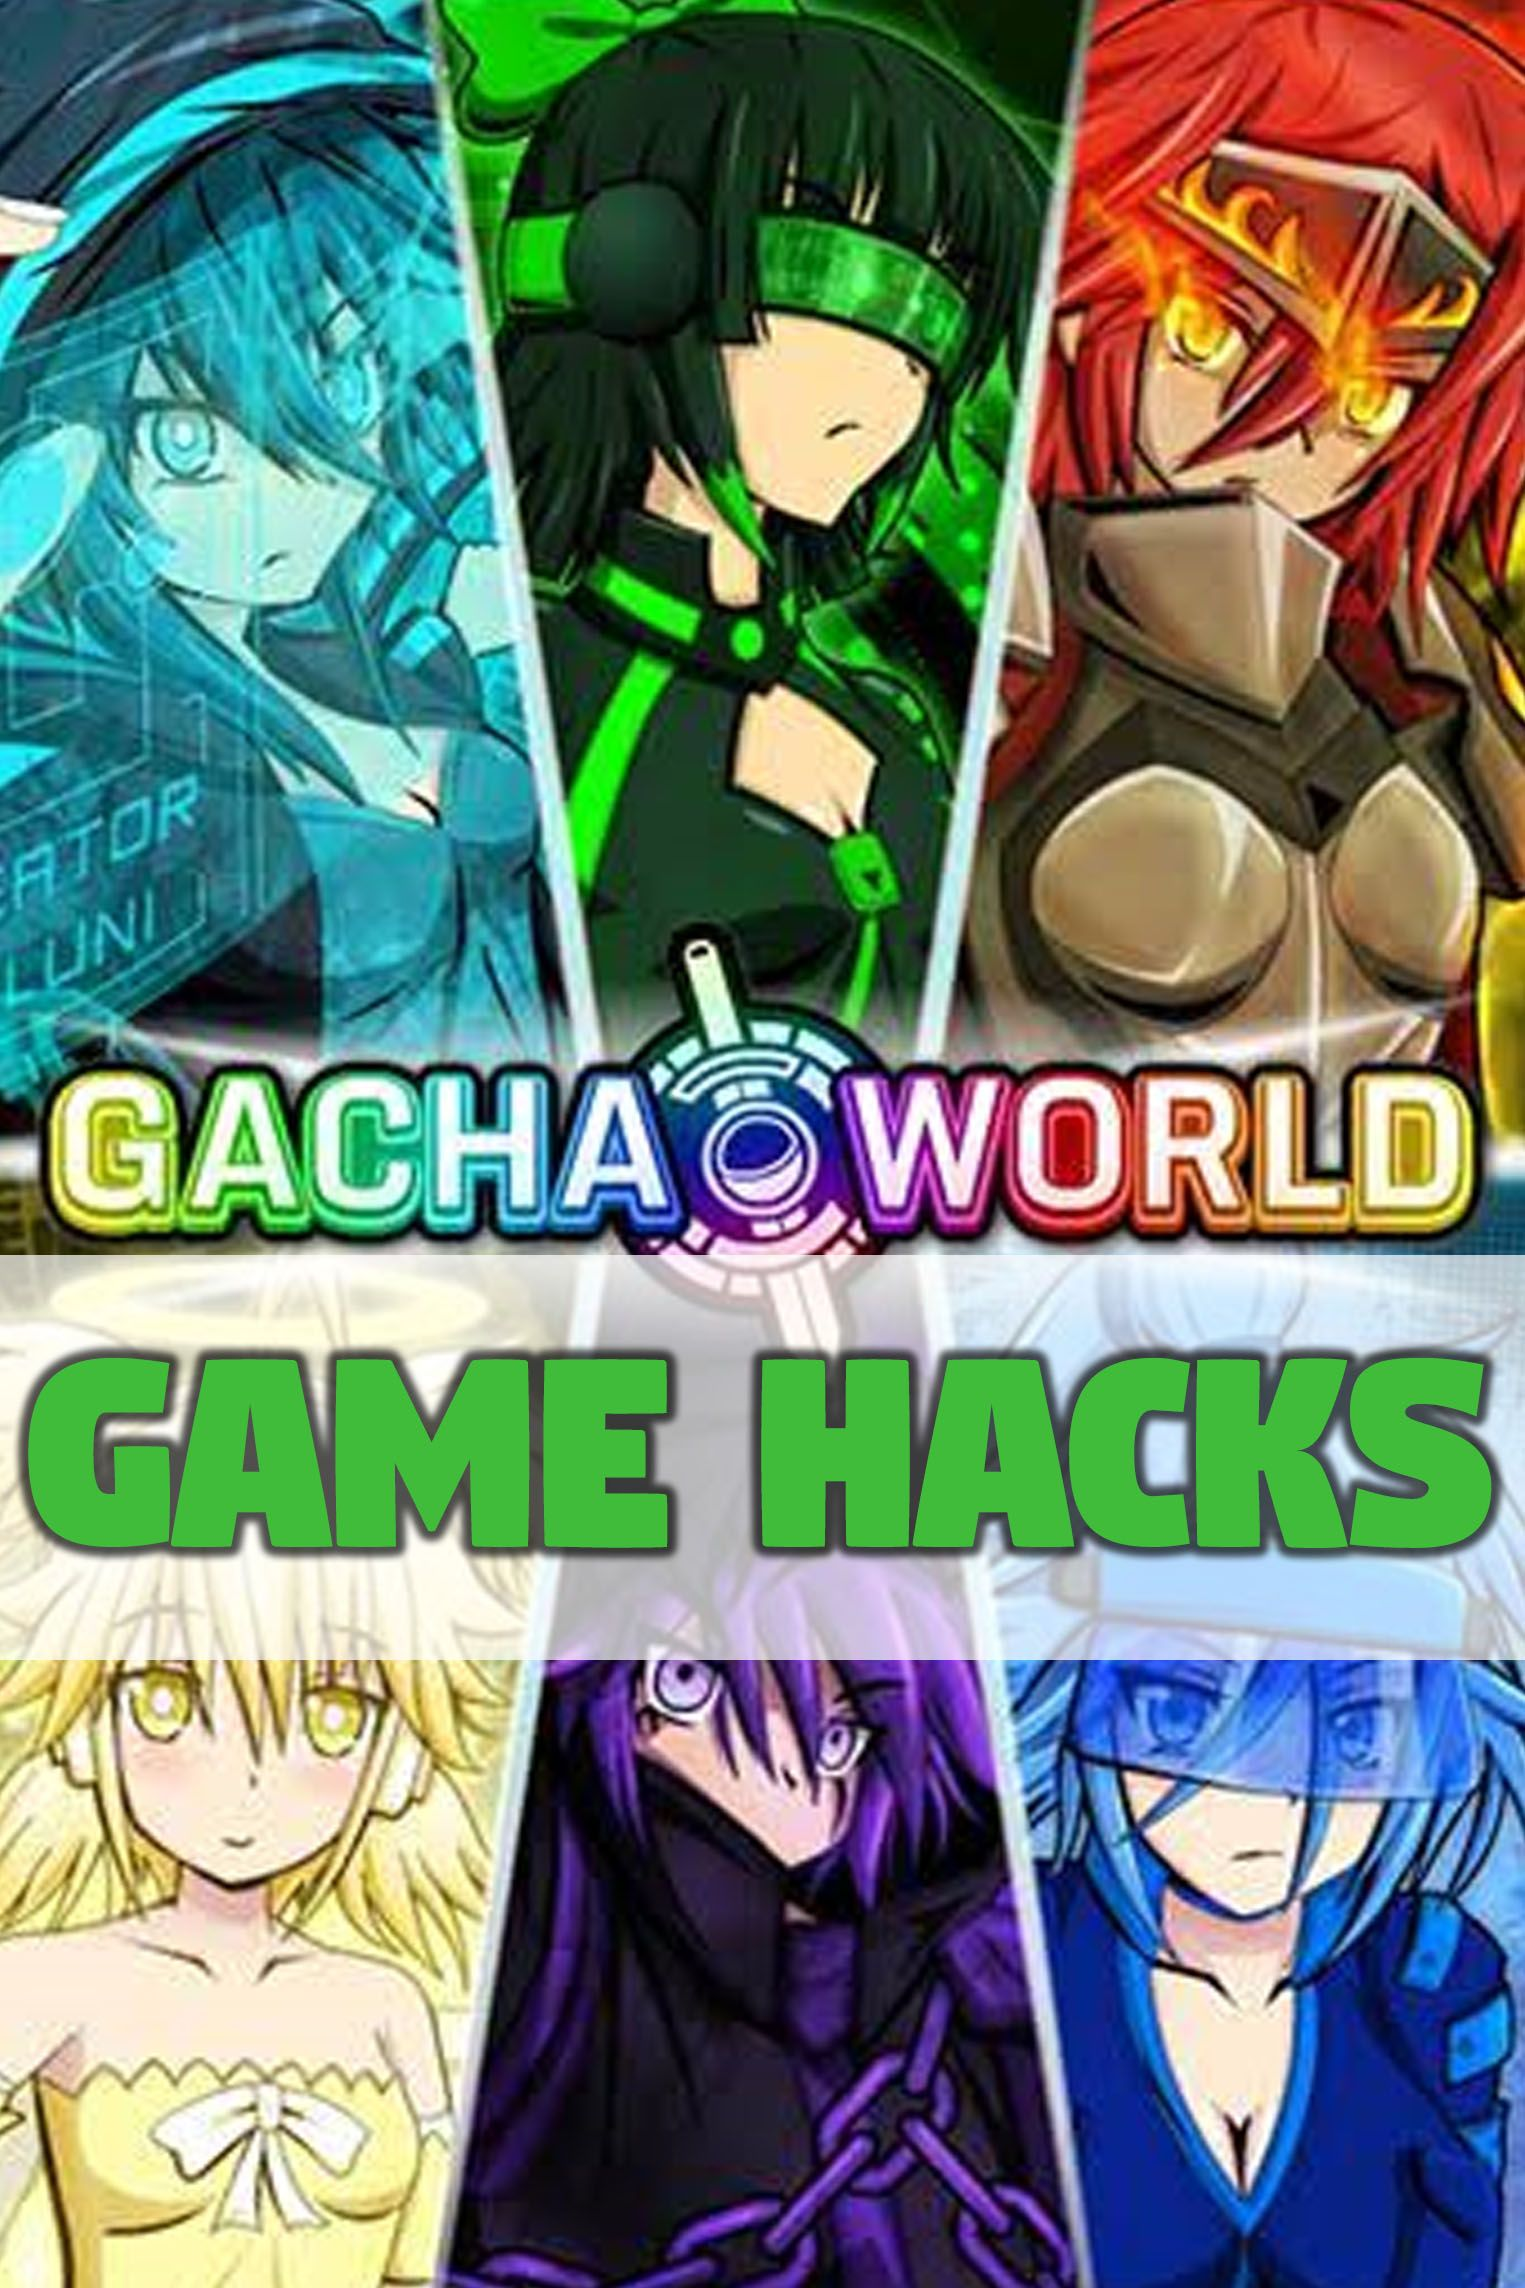 Gacha Games Hacks And Guide Cute Games Games To Win Anime